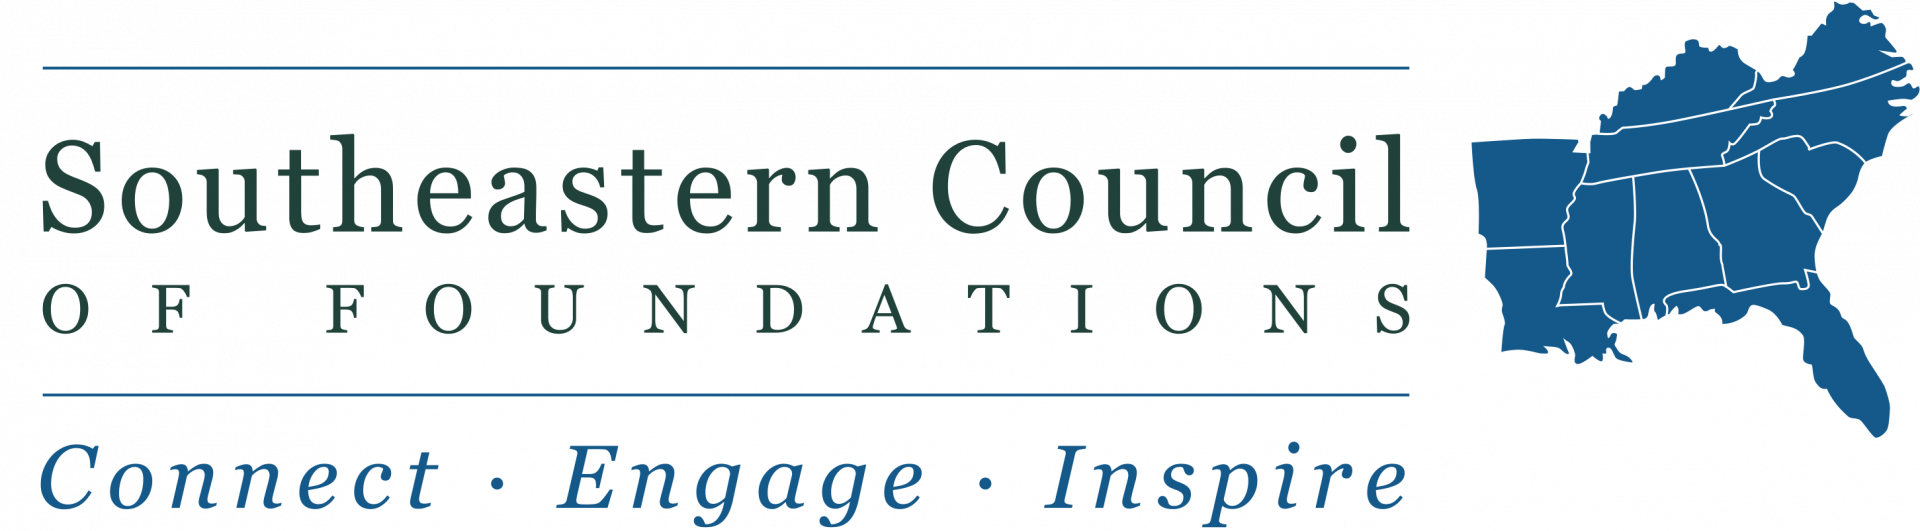 southeastern-council-of-foundations logo